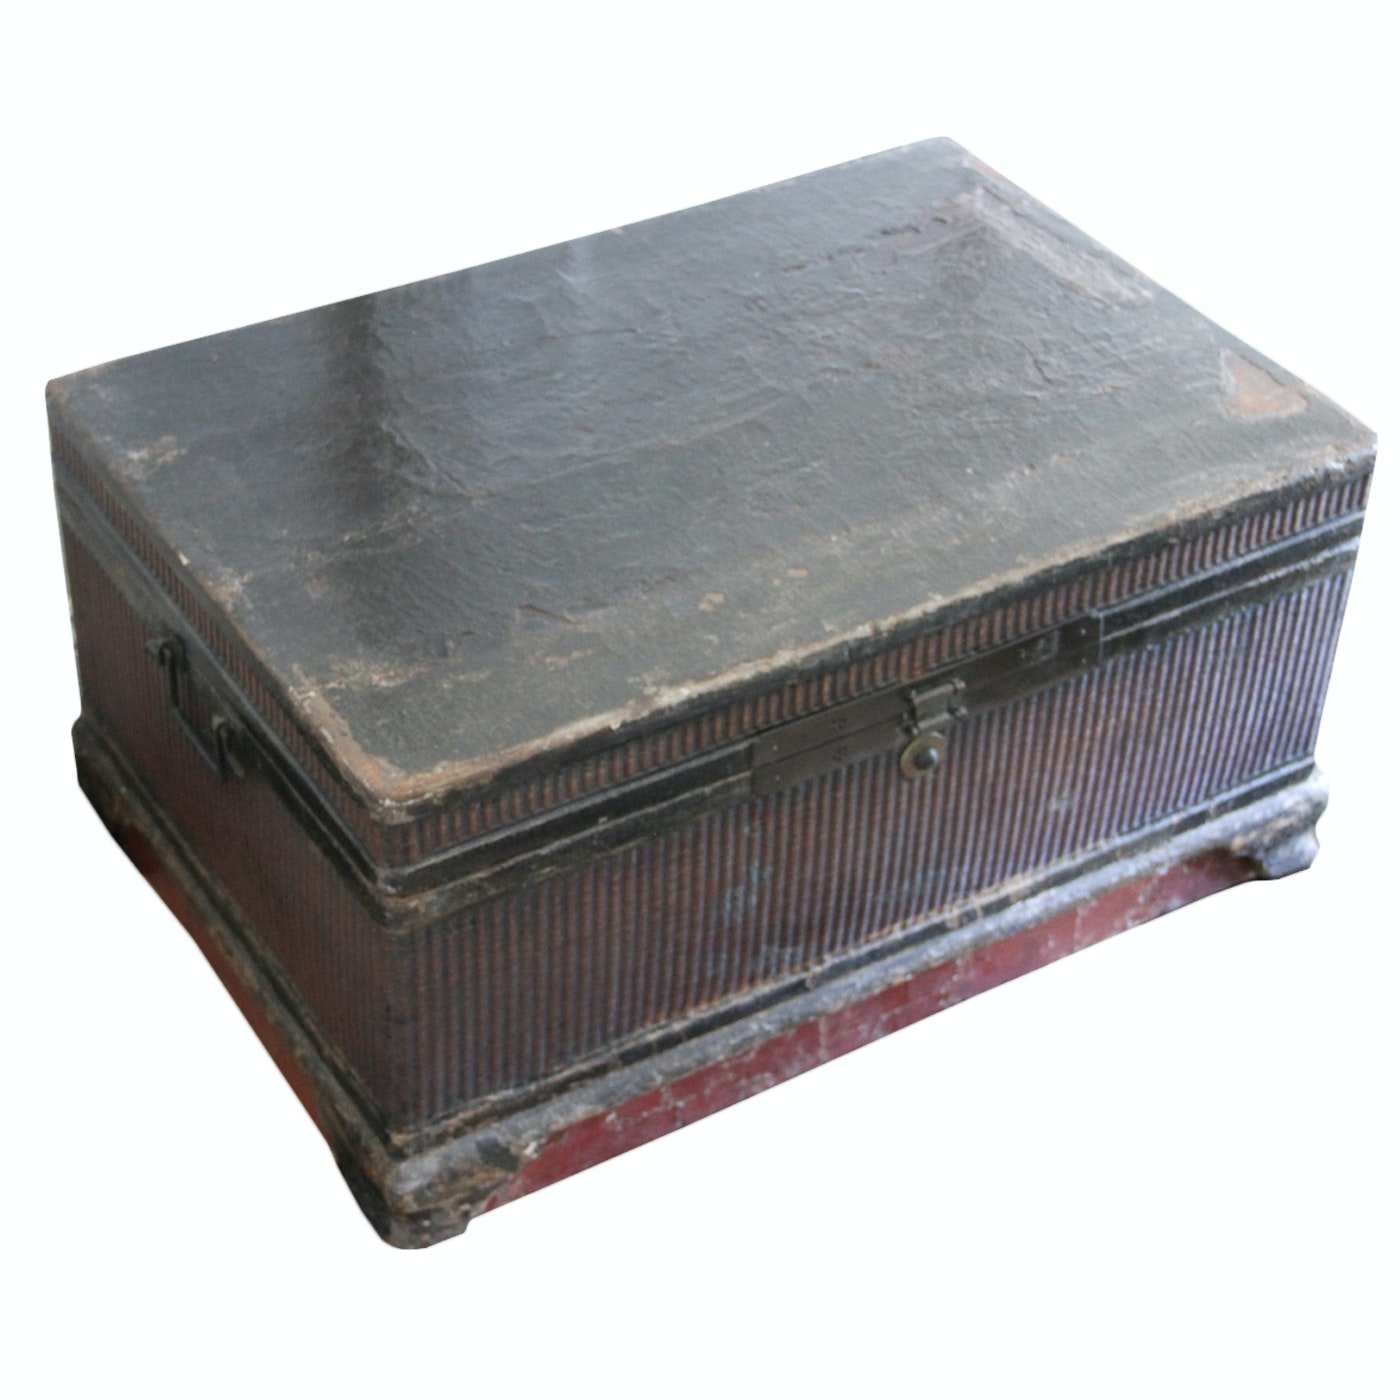 Vintage Wood and Wicker Trunk